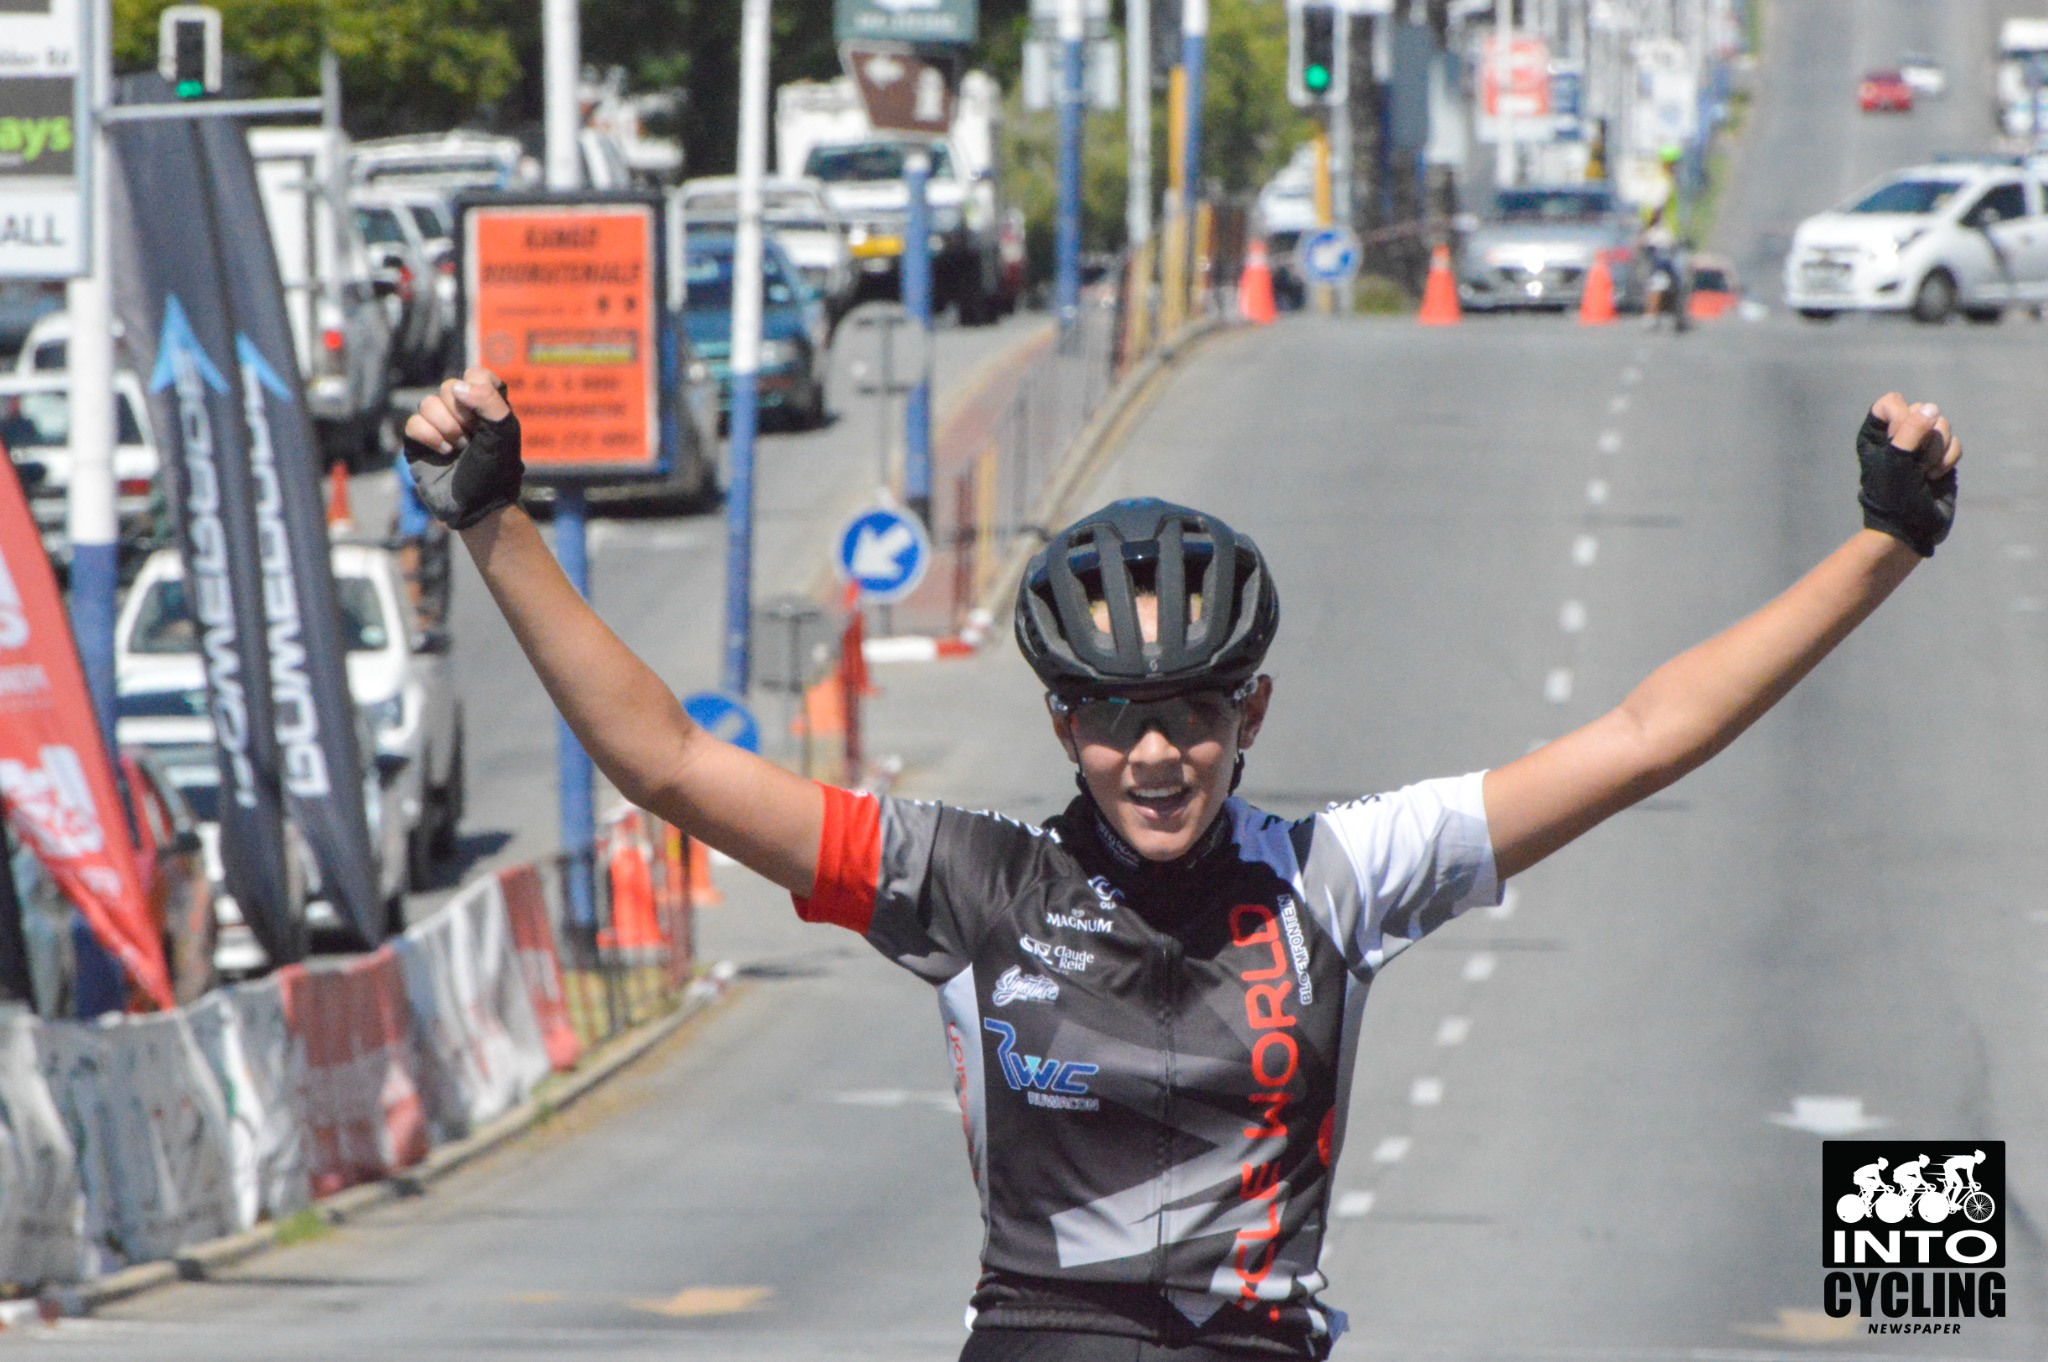 U17 Girls race winner Chante Olivier celebrates over the finish line at the 2018 SA National Road and Para-cycling Championships, which took place in the streets of Oudtshoorn from 6-11 February. 📷 www.intocycling.co.za